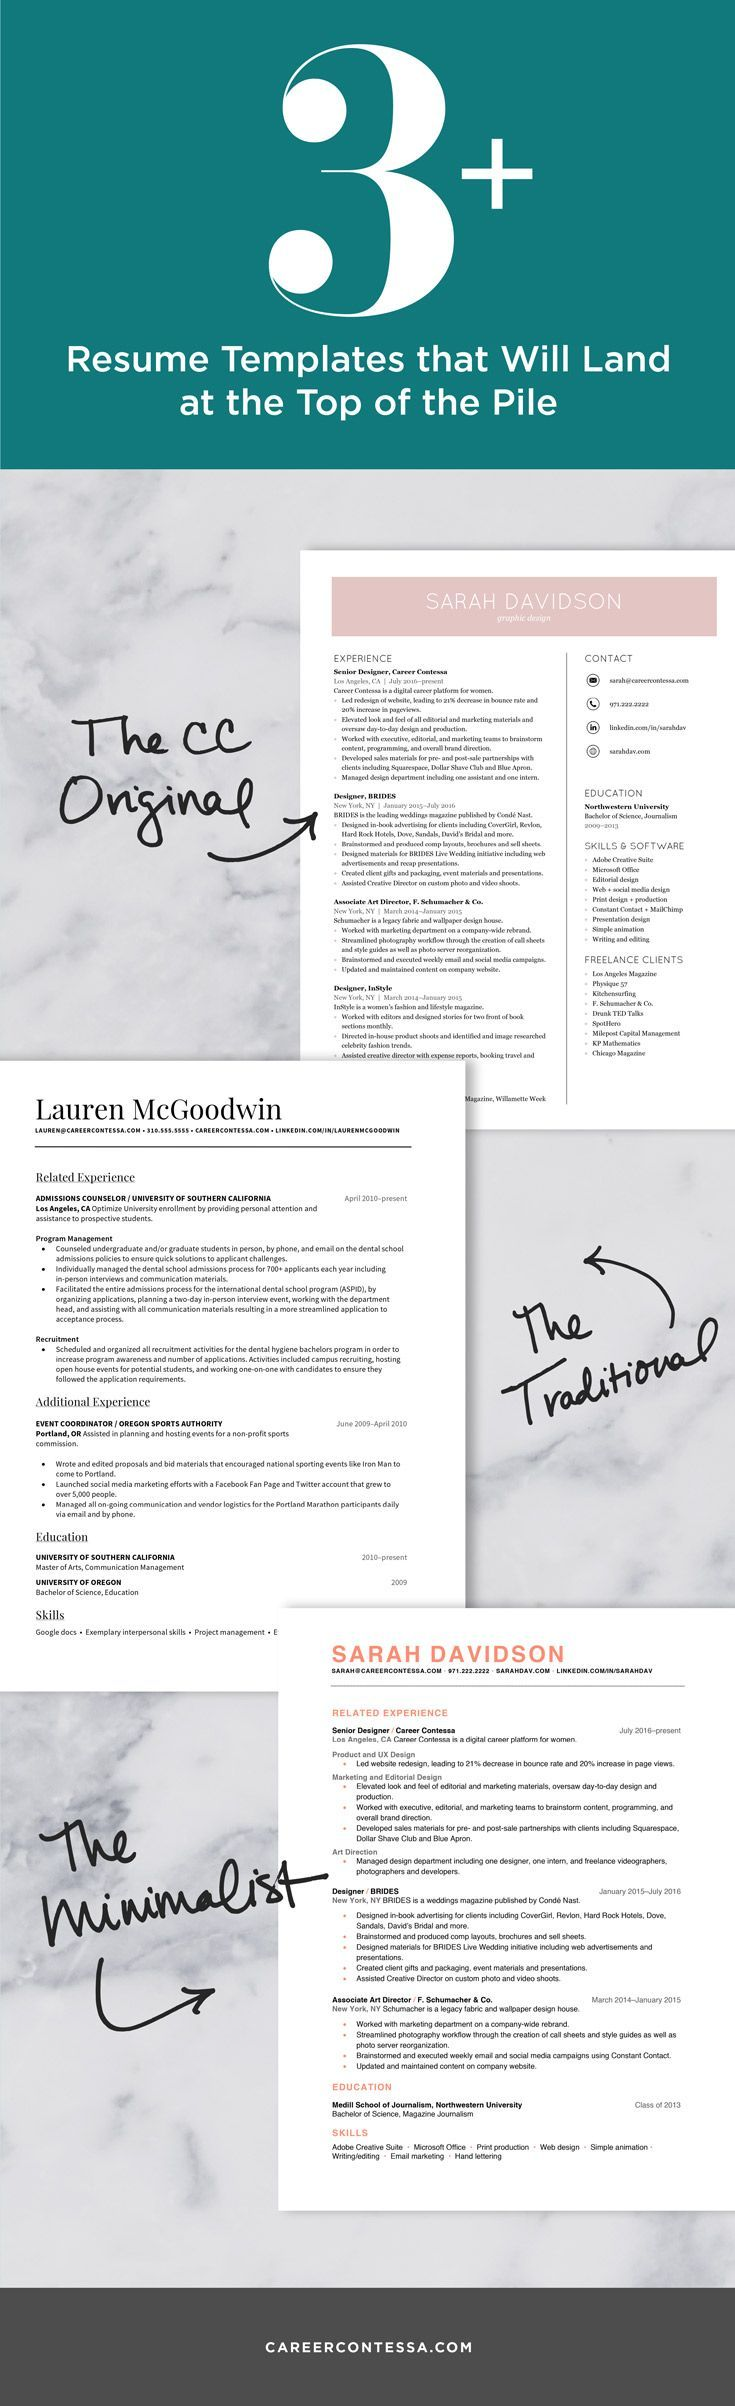 Well Designed Resumes 19 Best Professional Resume Templates Images On Pinterest